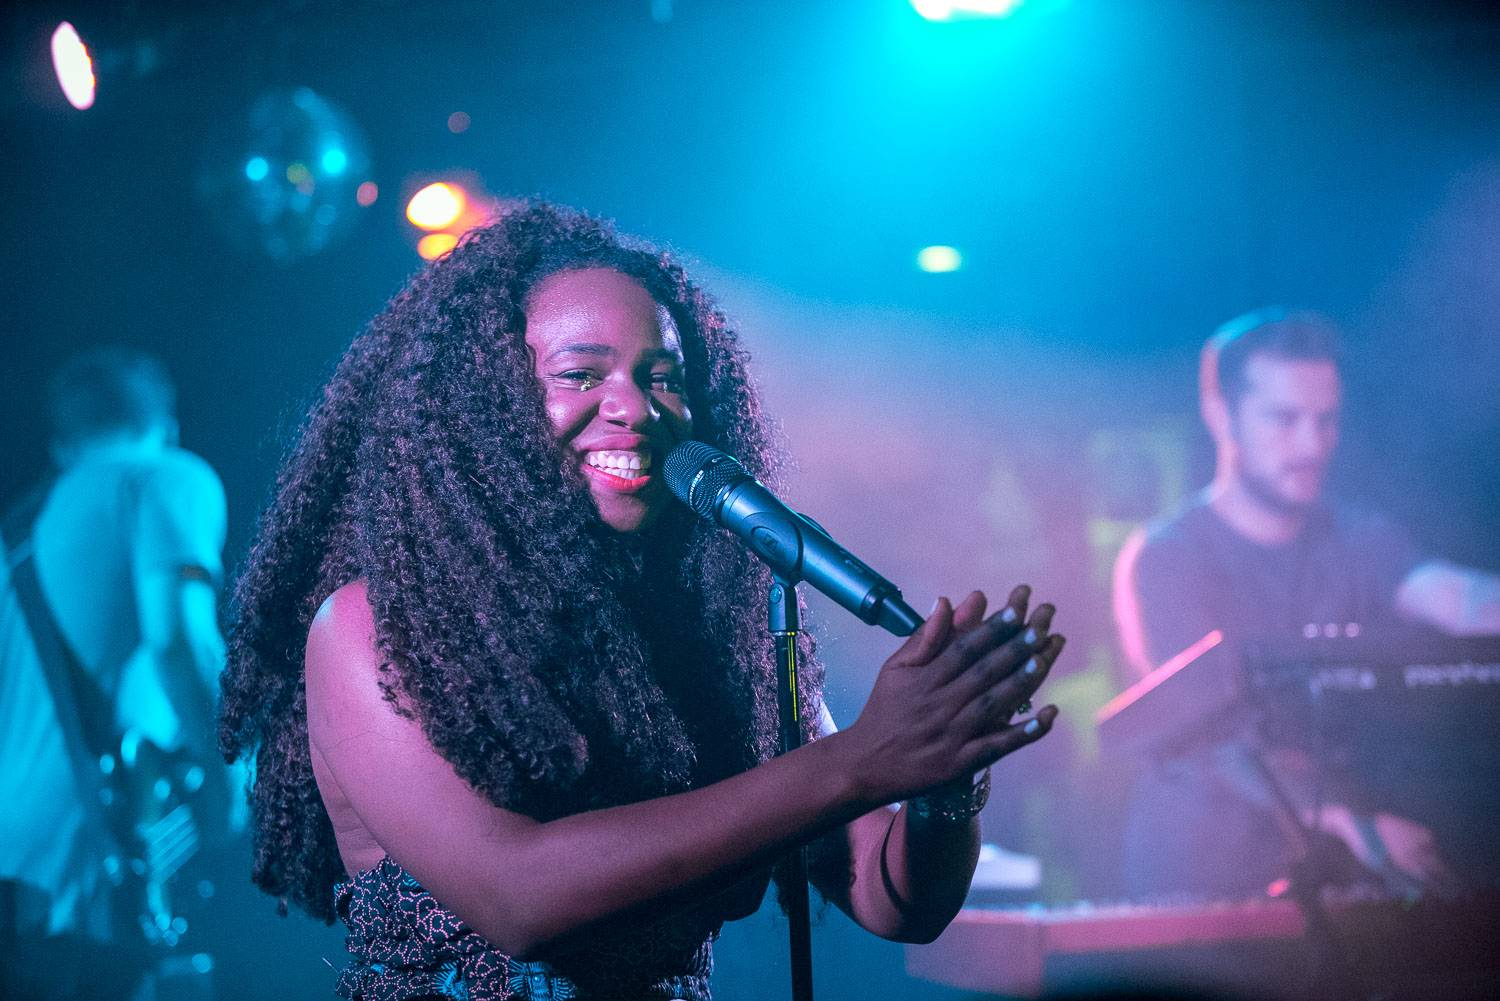 NAO at the Biltmore Cabaret, Vancouver, Sept. 24 2016. Pavel Boiko photo.